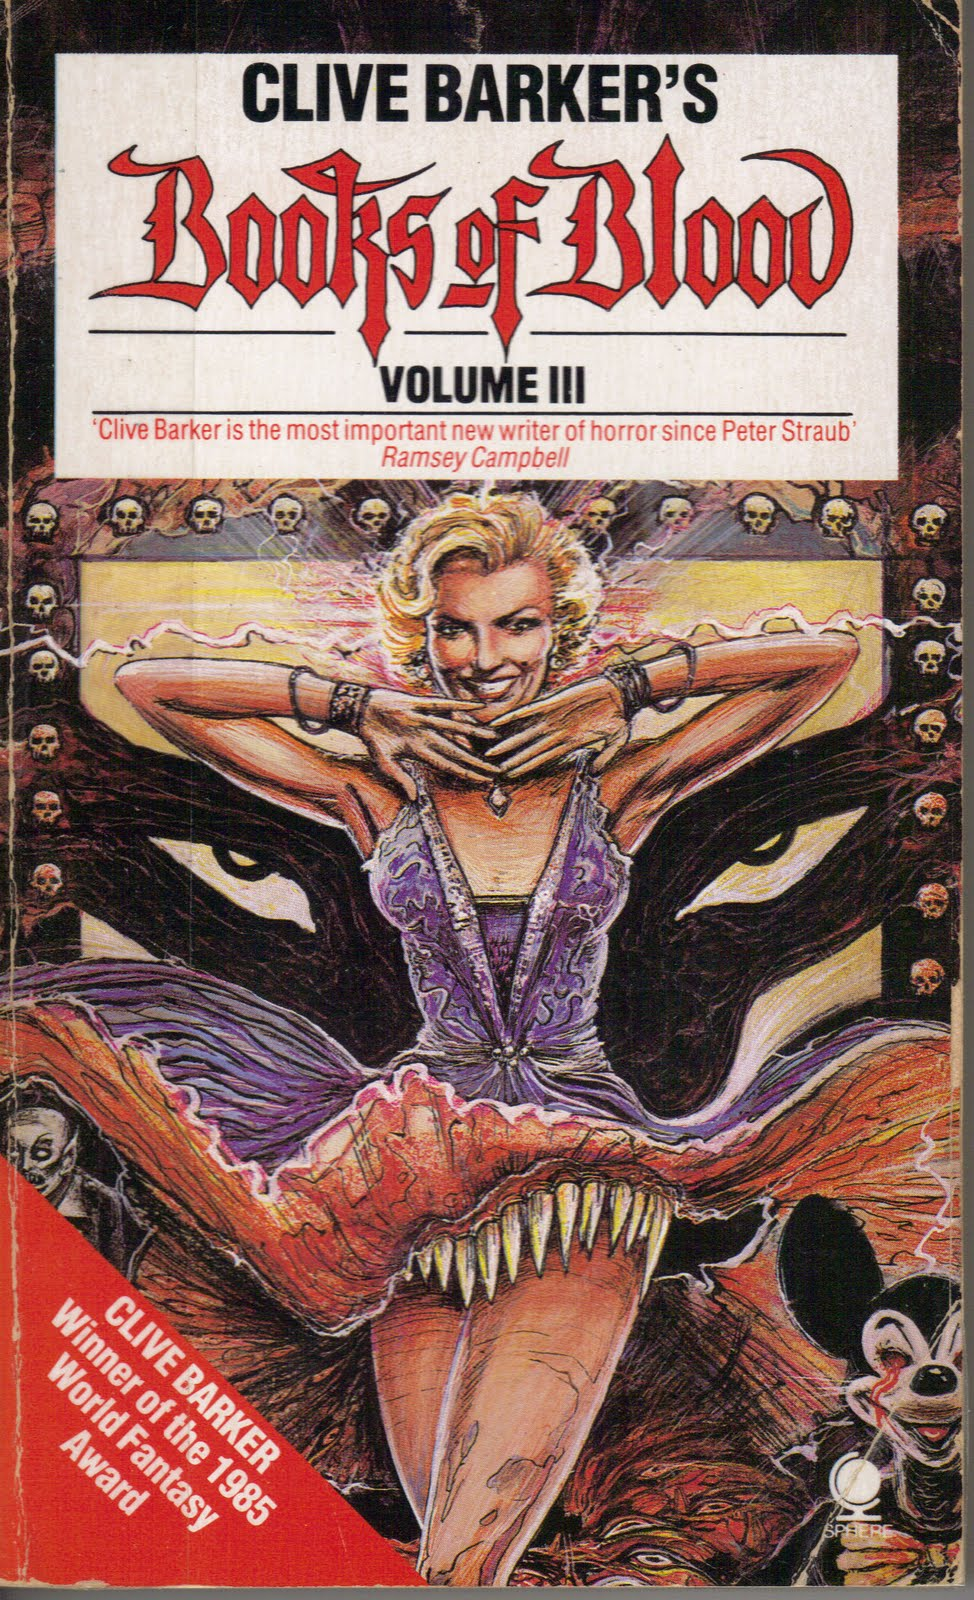 clive barker blood books horror fiction volume fuckable weaveworld vol movie movies 1984 films too much fantasy fur